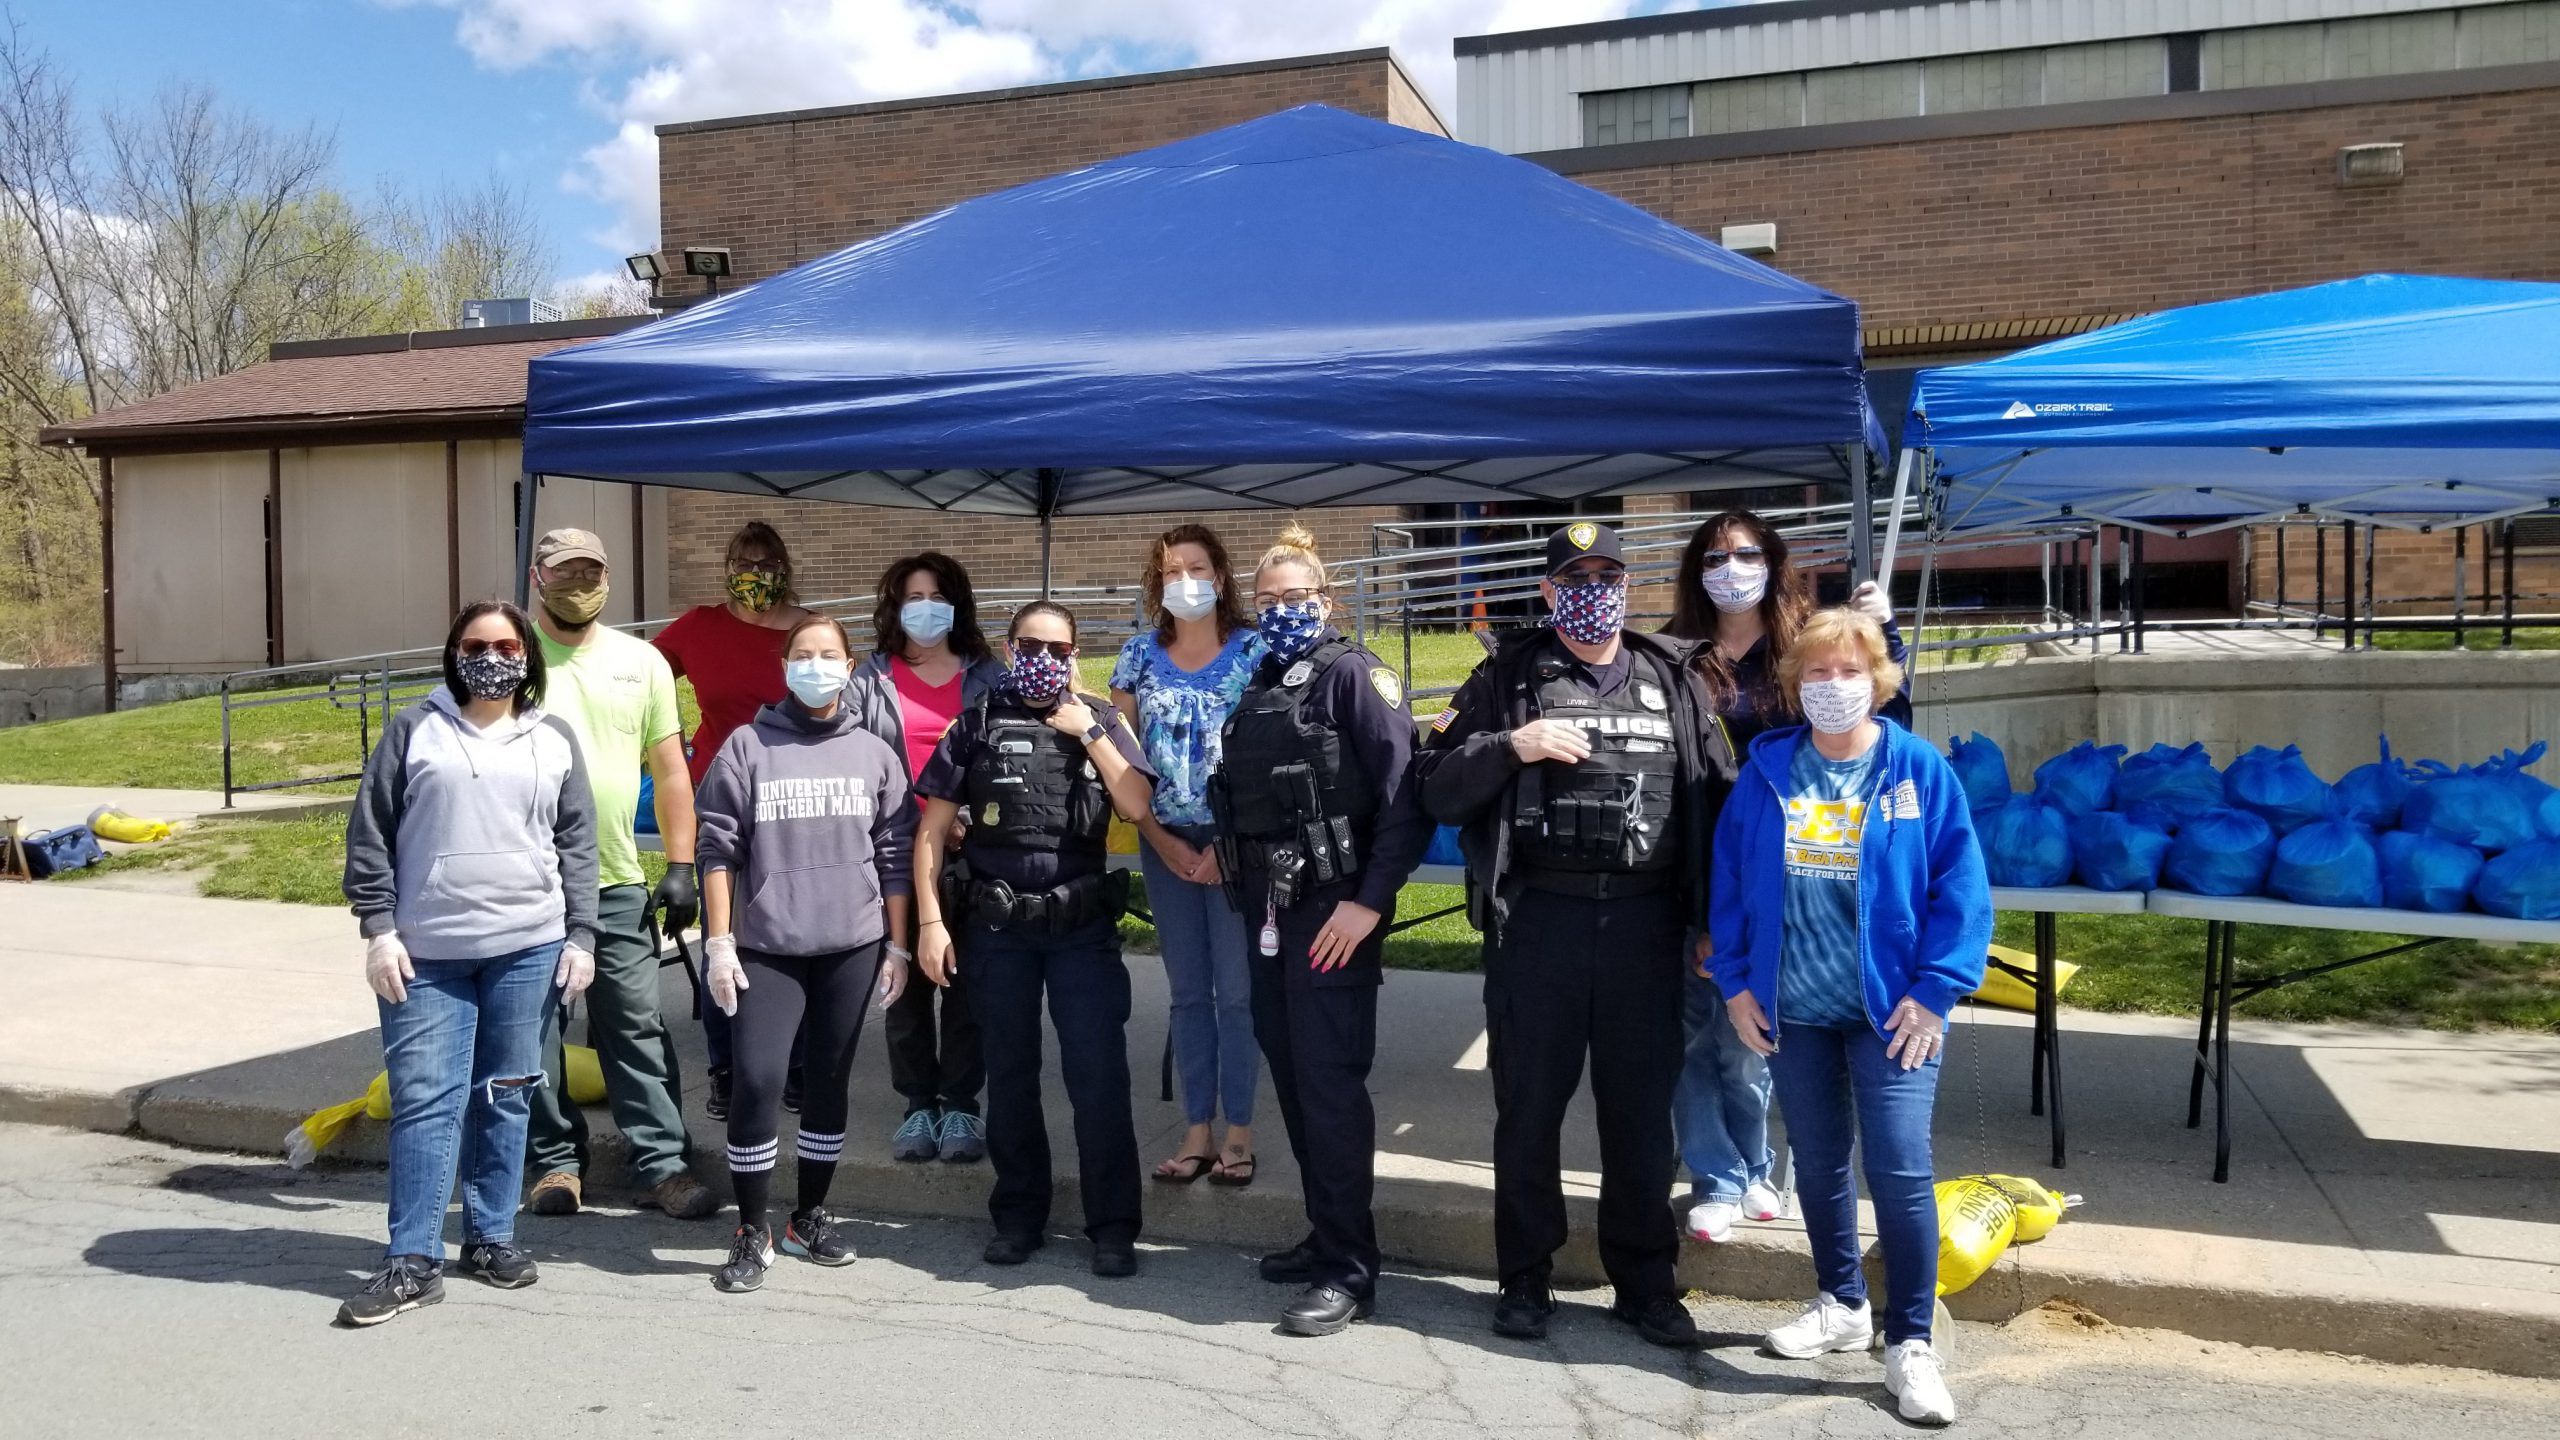 a dozen people with masks on stand in front of a blue tent